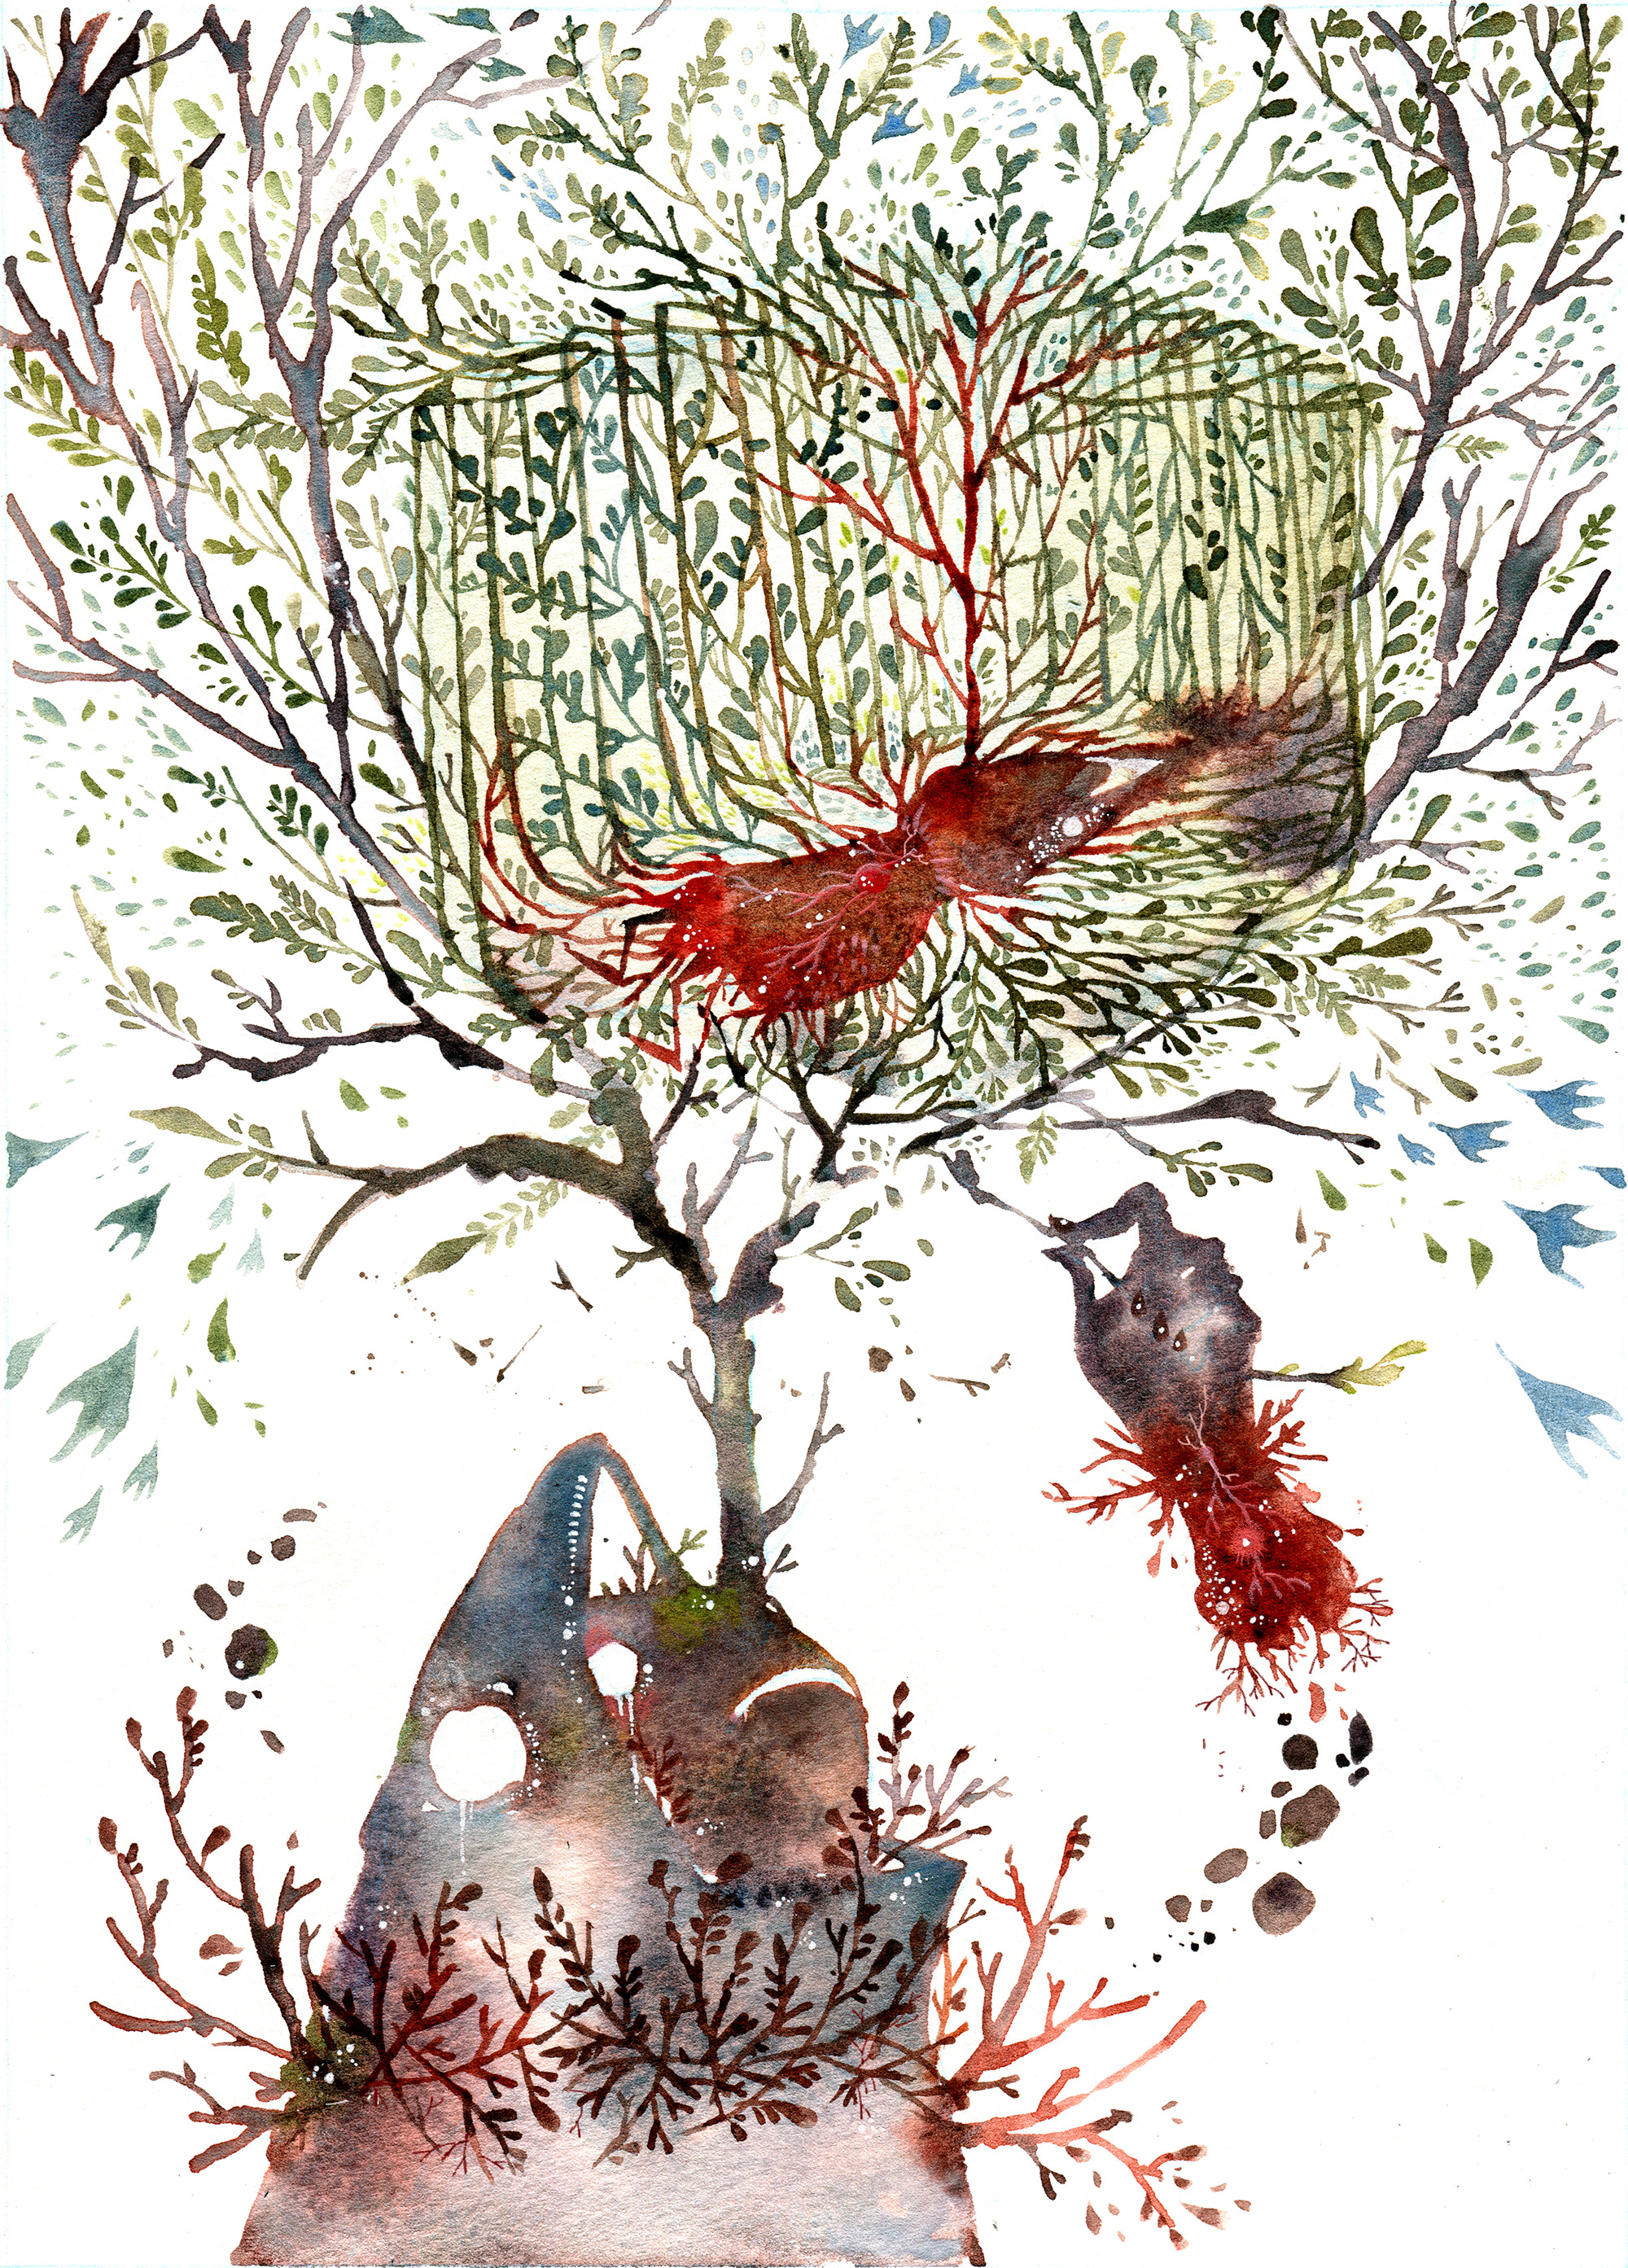 Watercolor Illustrations That Trace the Dark and Light Elements of Storybook Myths by Amber Ma